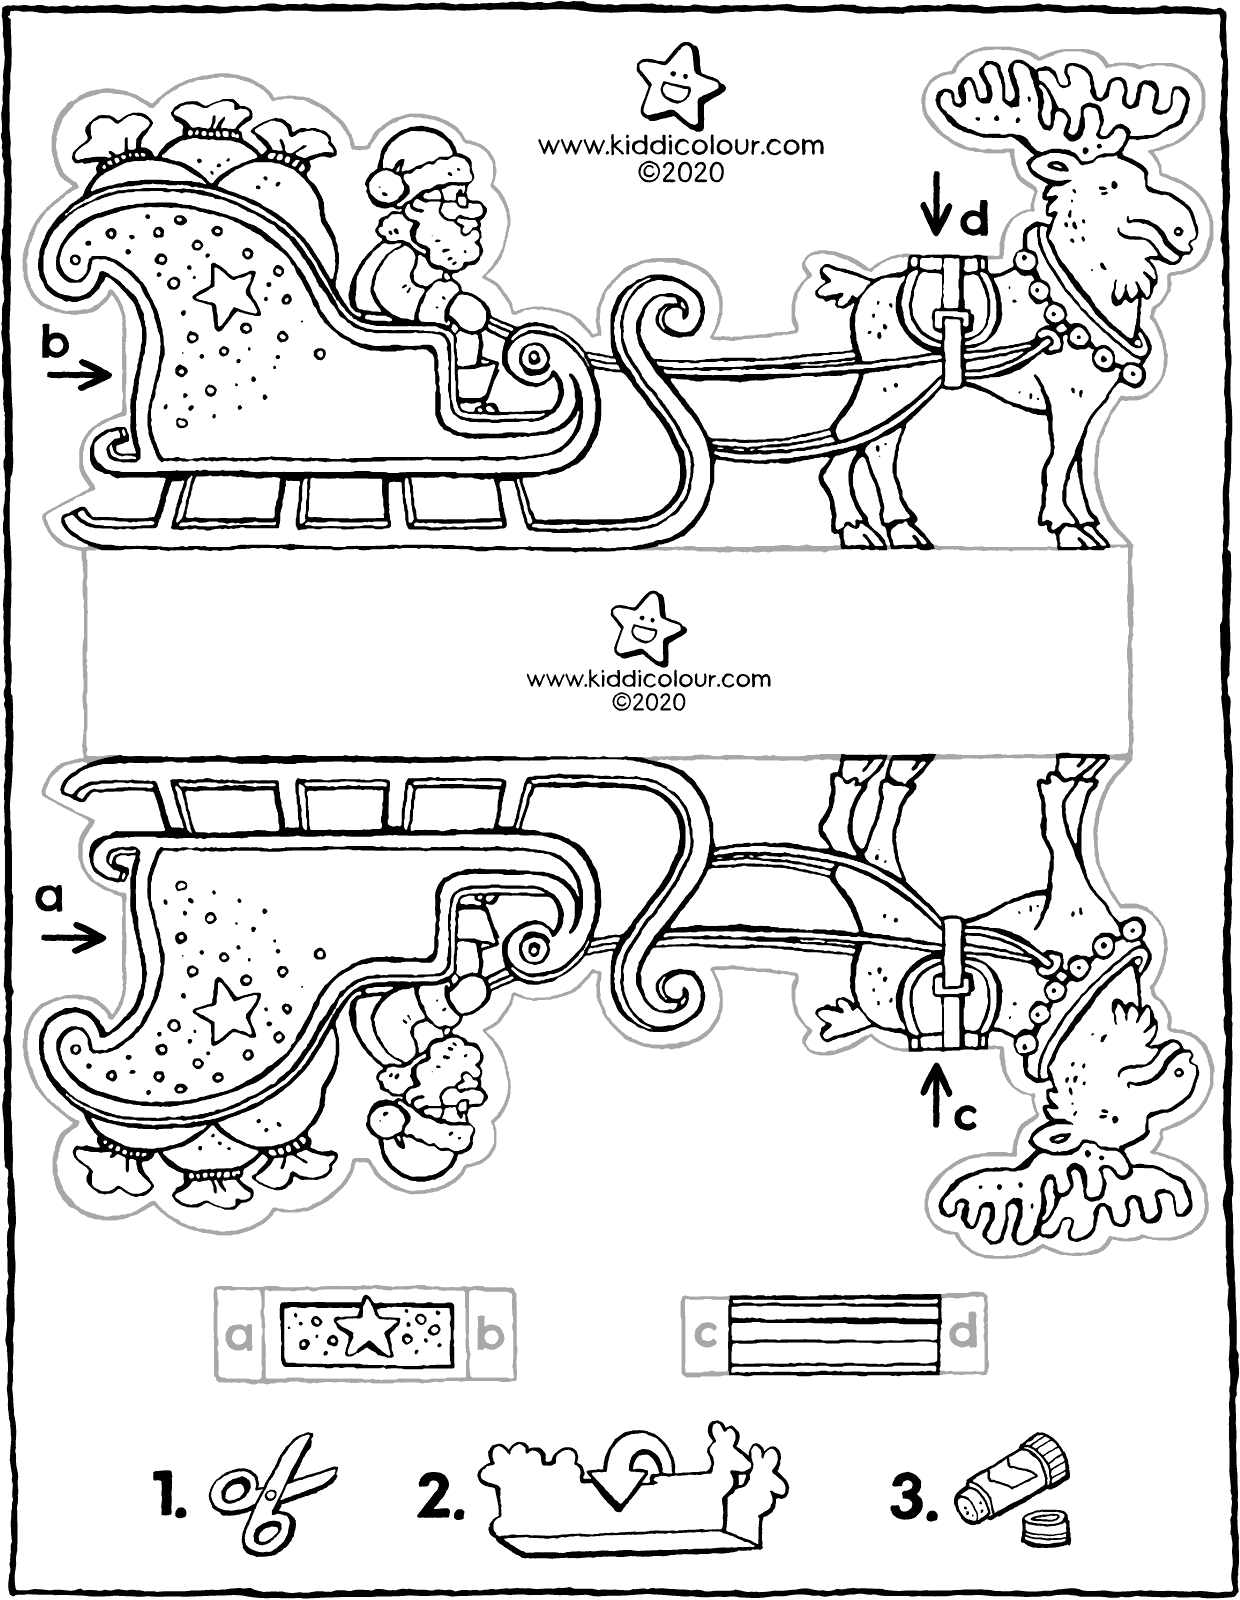 make your own Father Christmas with sleigh colouring page drawing picture 01V